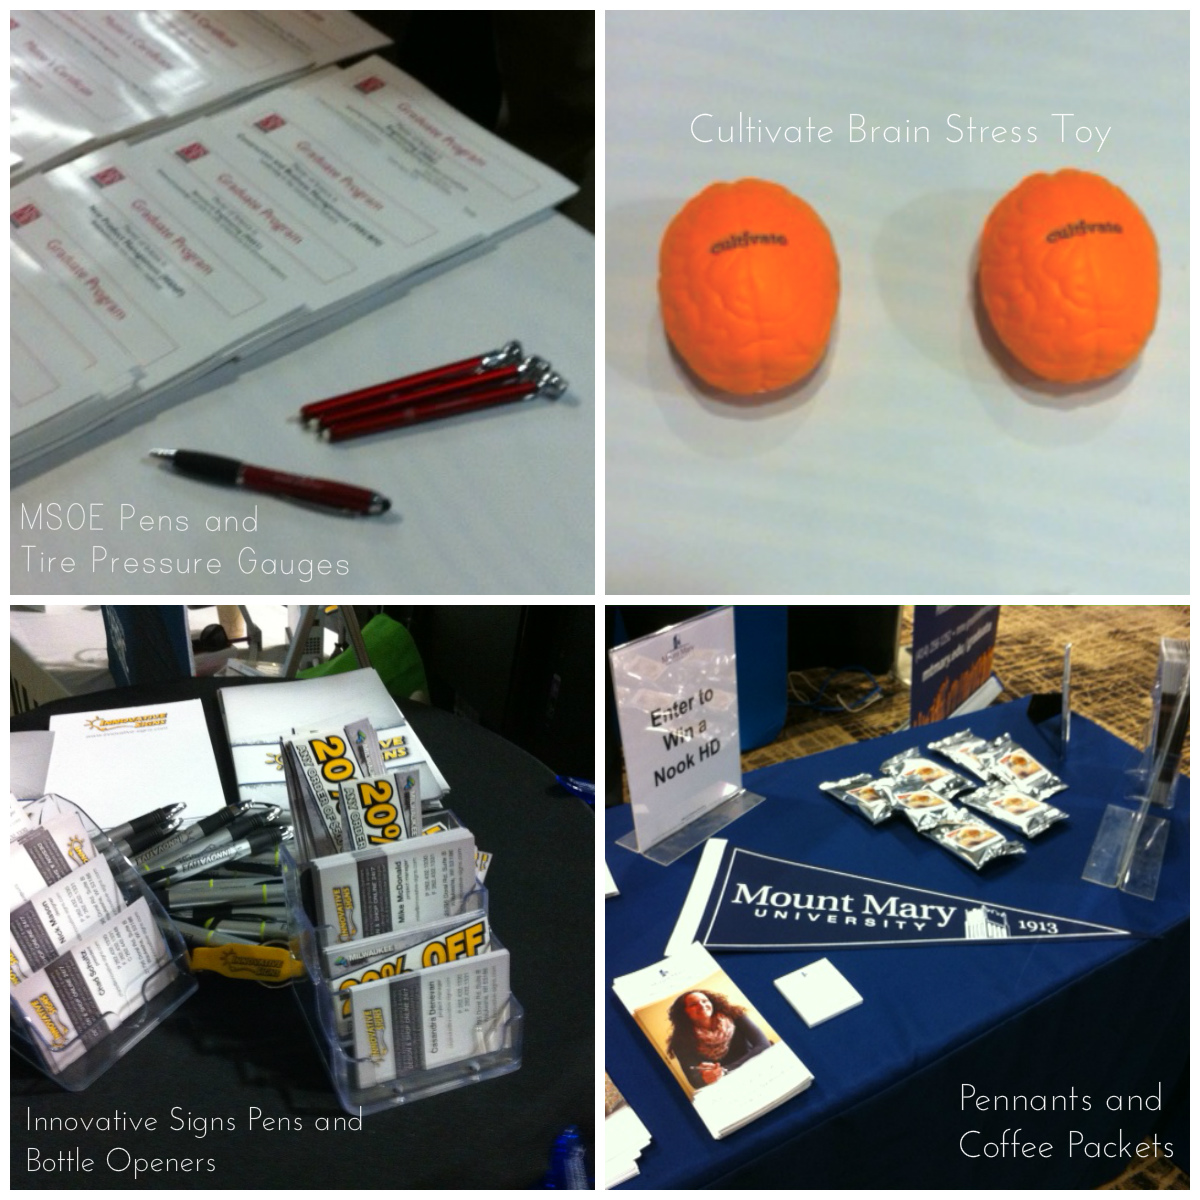 Promotional Products at work at BizTimes Expo 2014